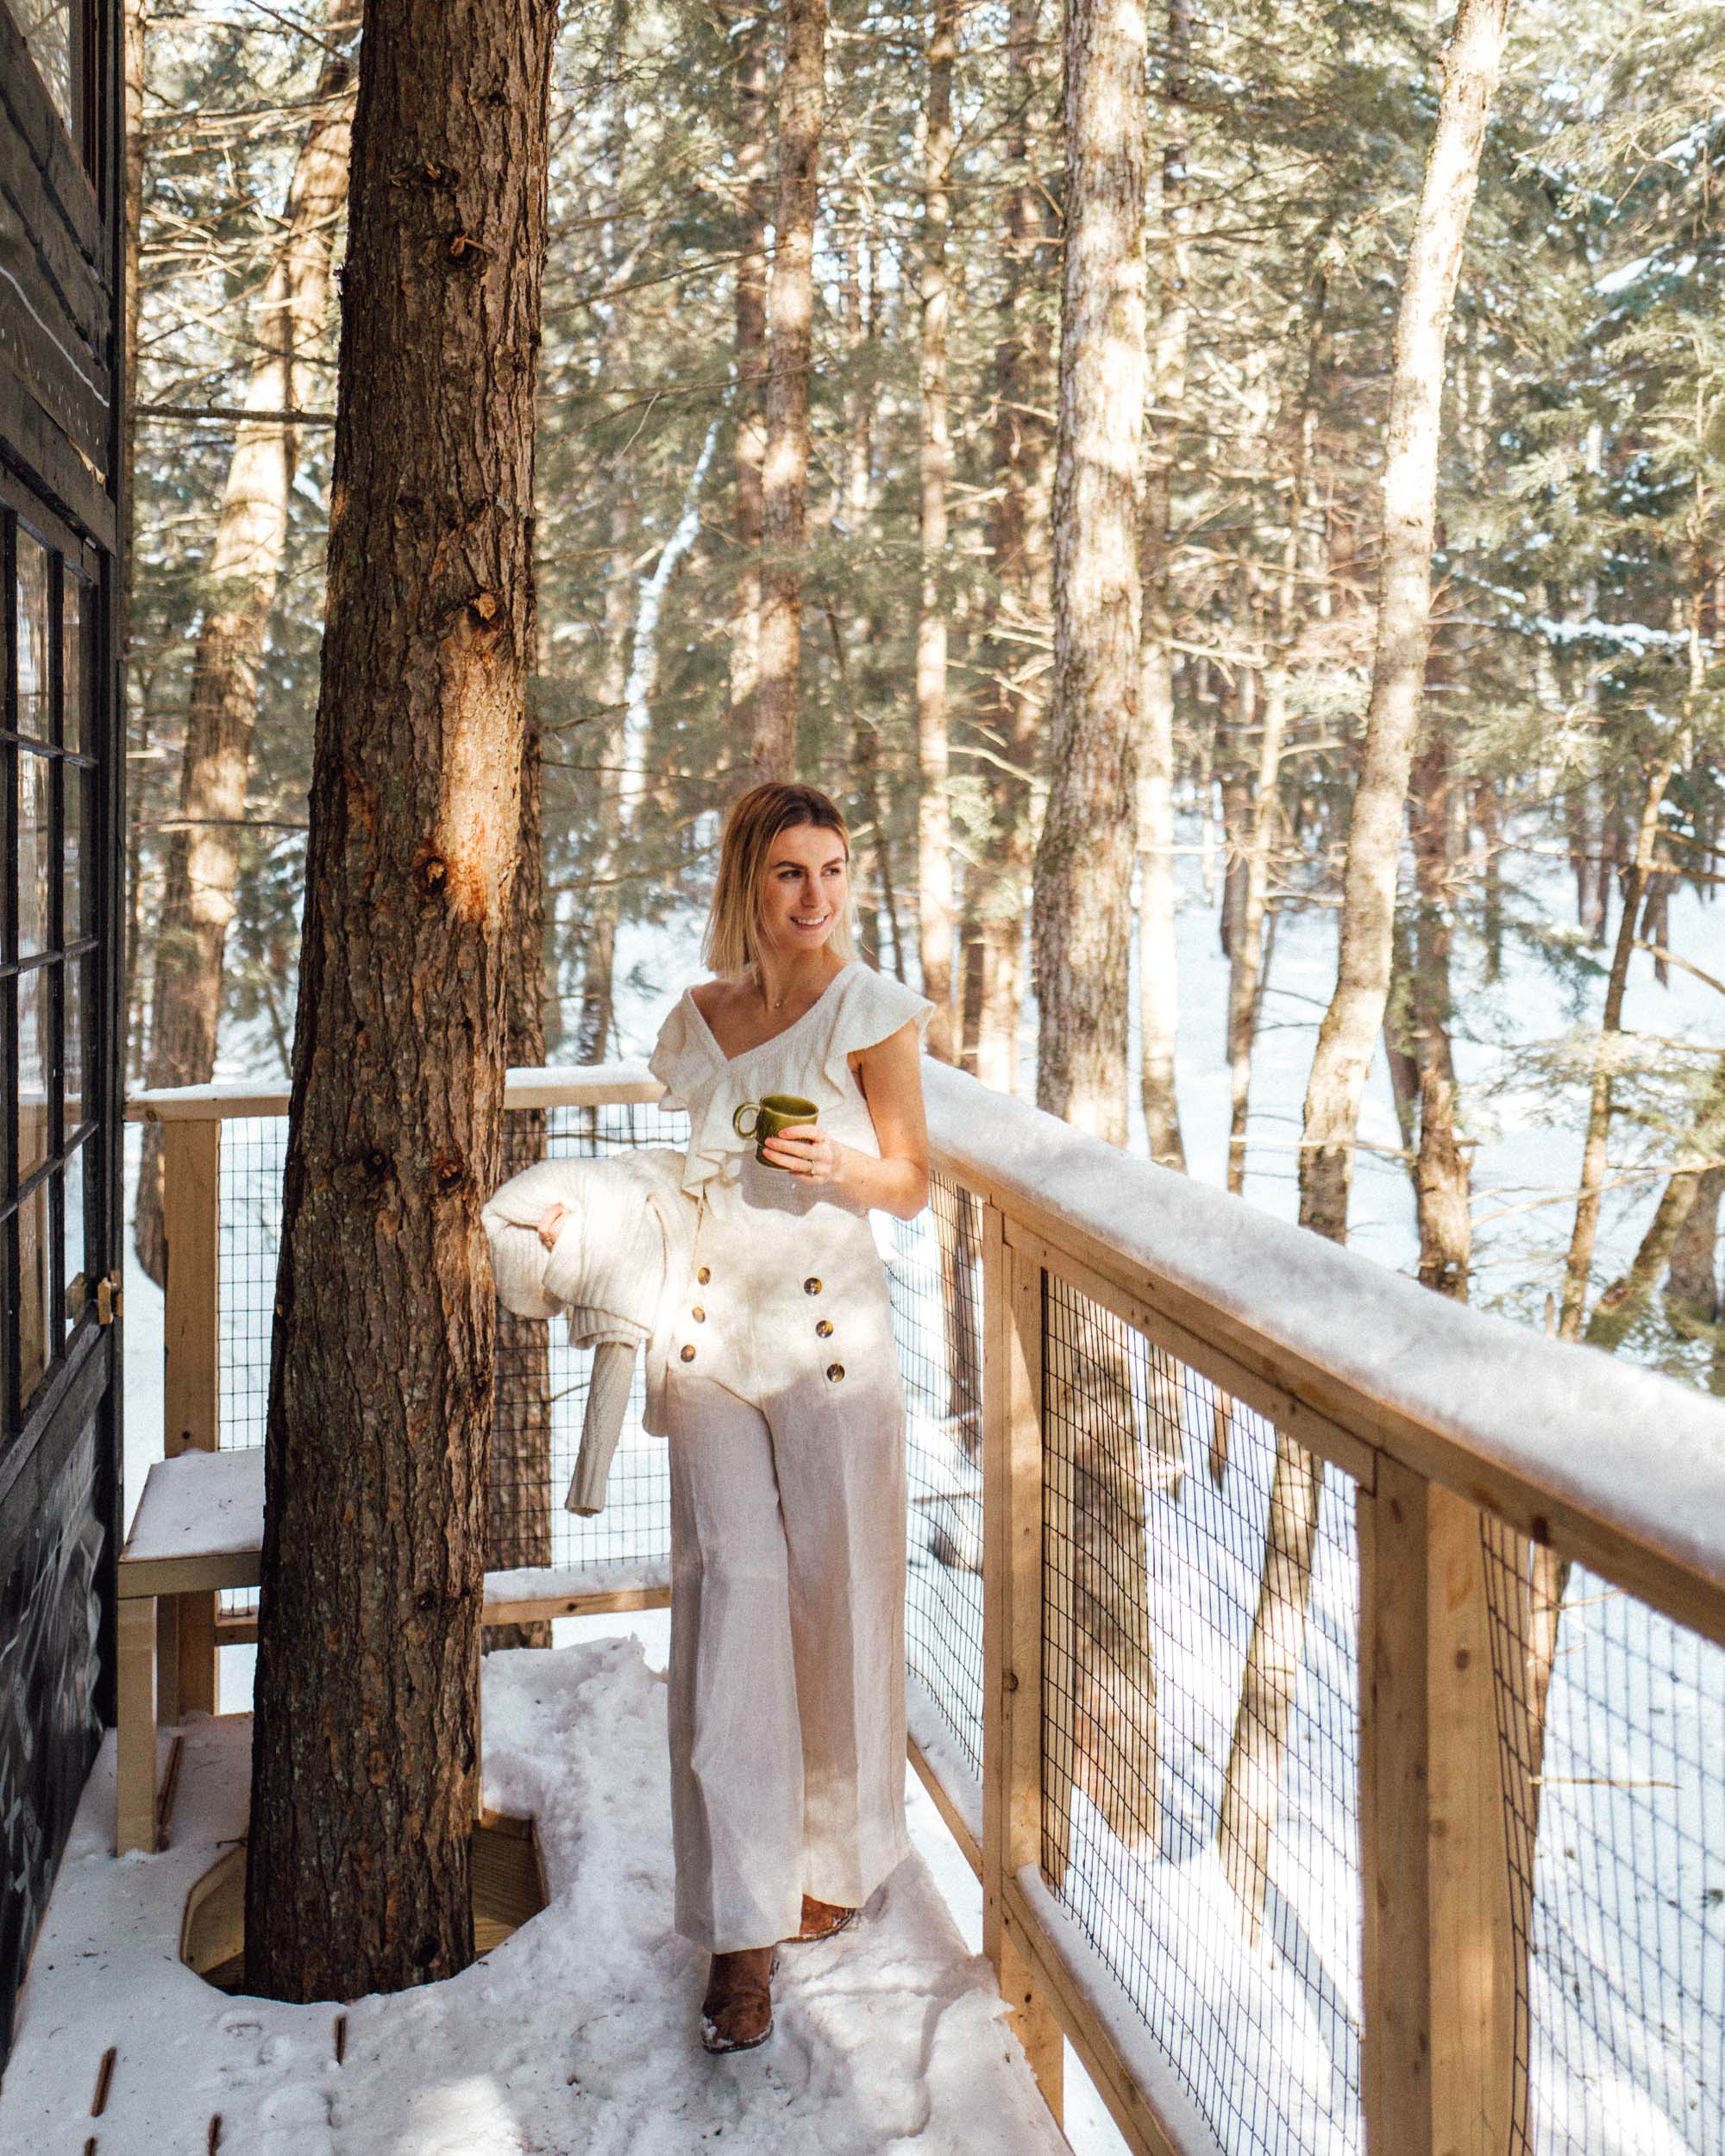 Anthropologie style outside our Treehouse Airbnb getaway in Vermont via Find Us Lost